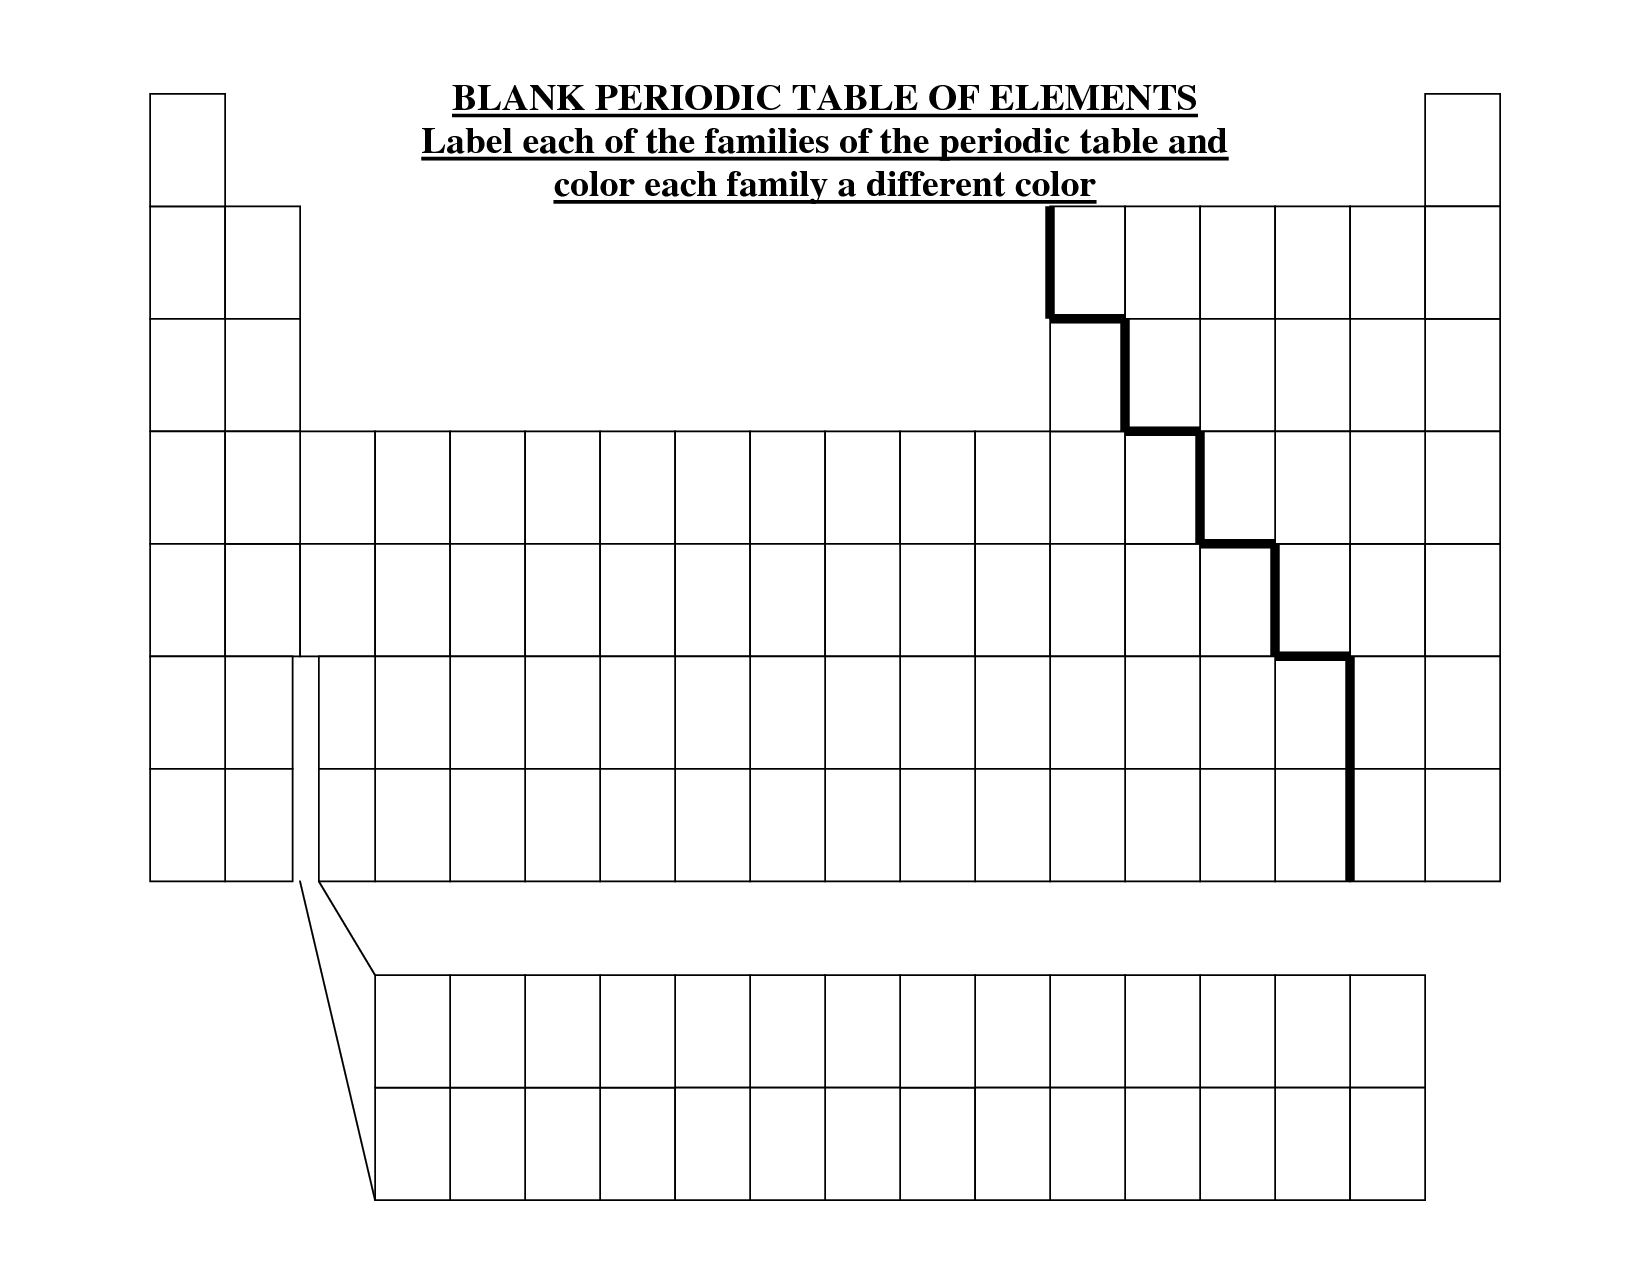 picture about Blank Periodic Table Printable called Blank Periodic Desk Template. phrase desk template yahoo